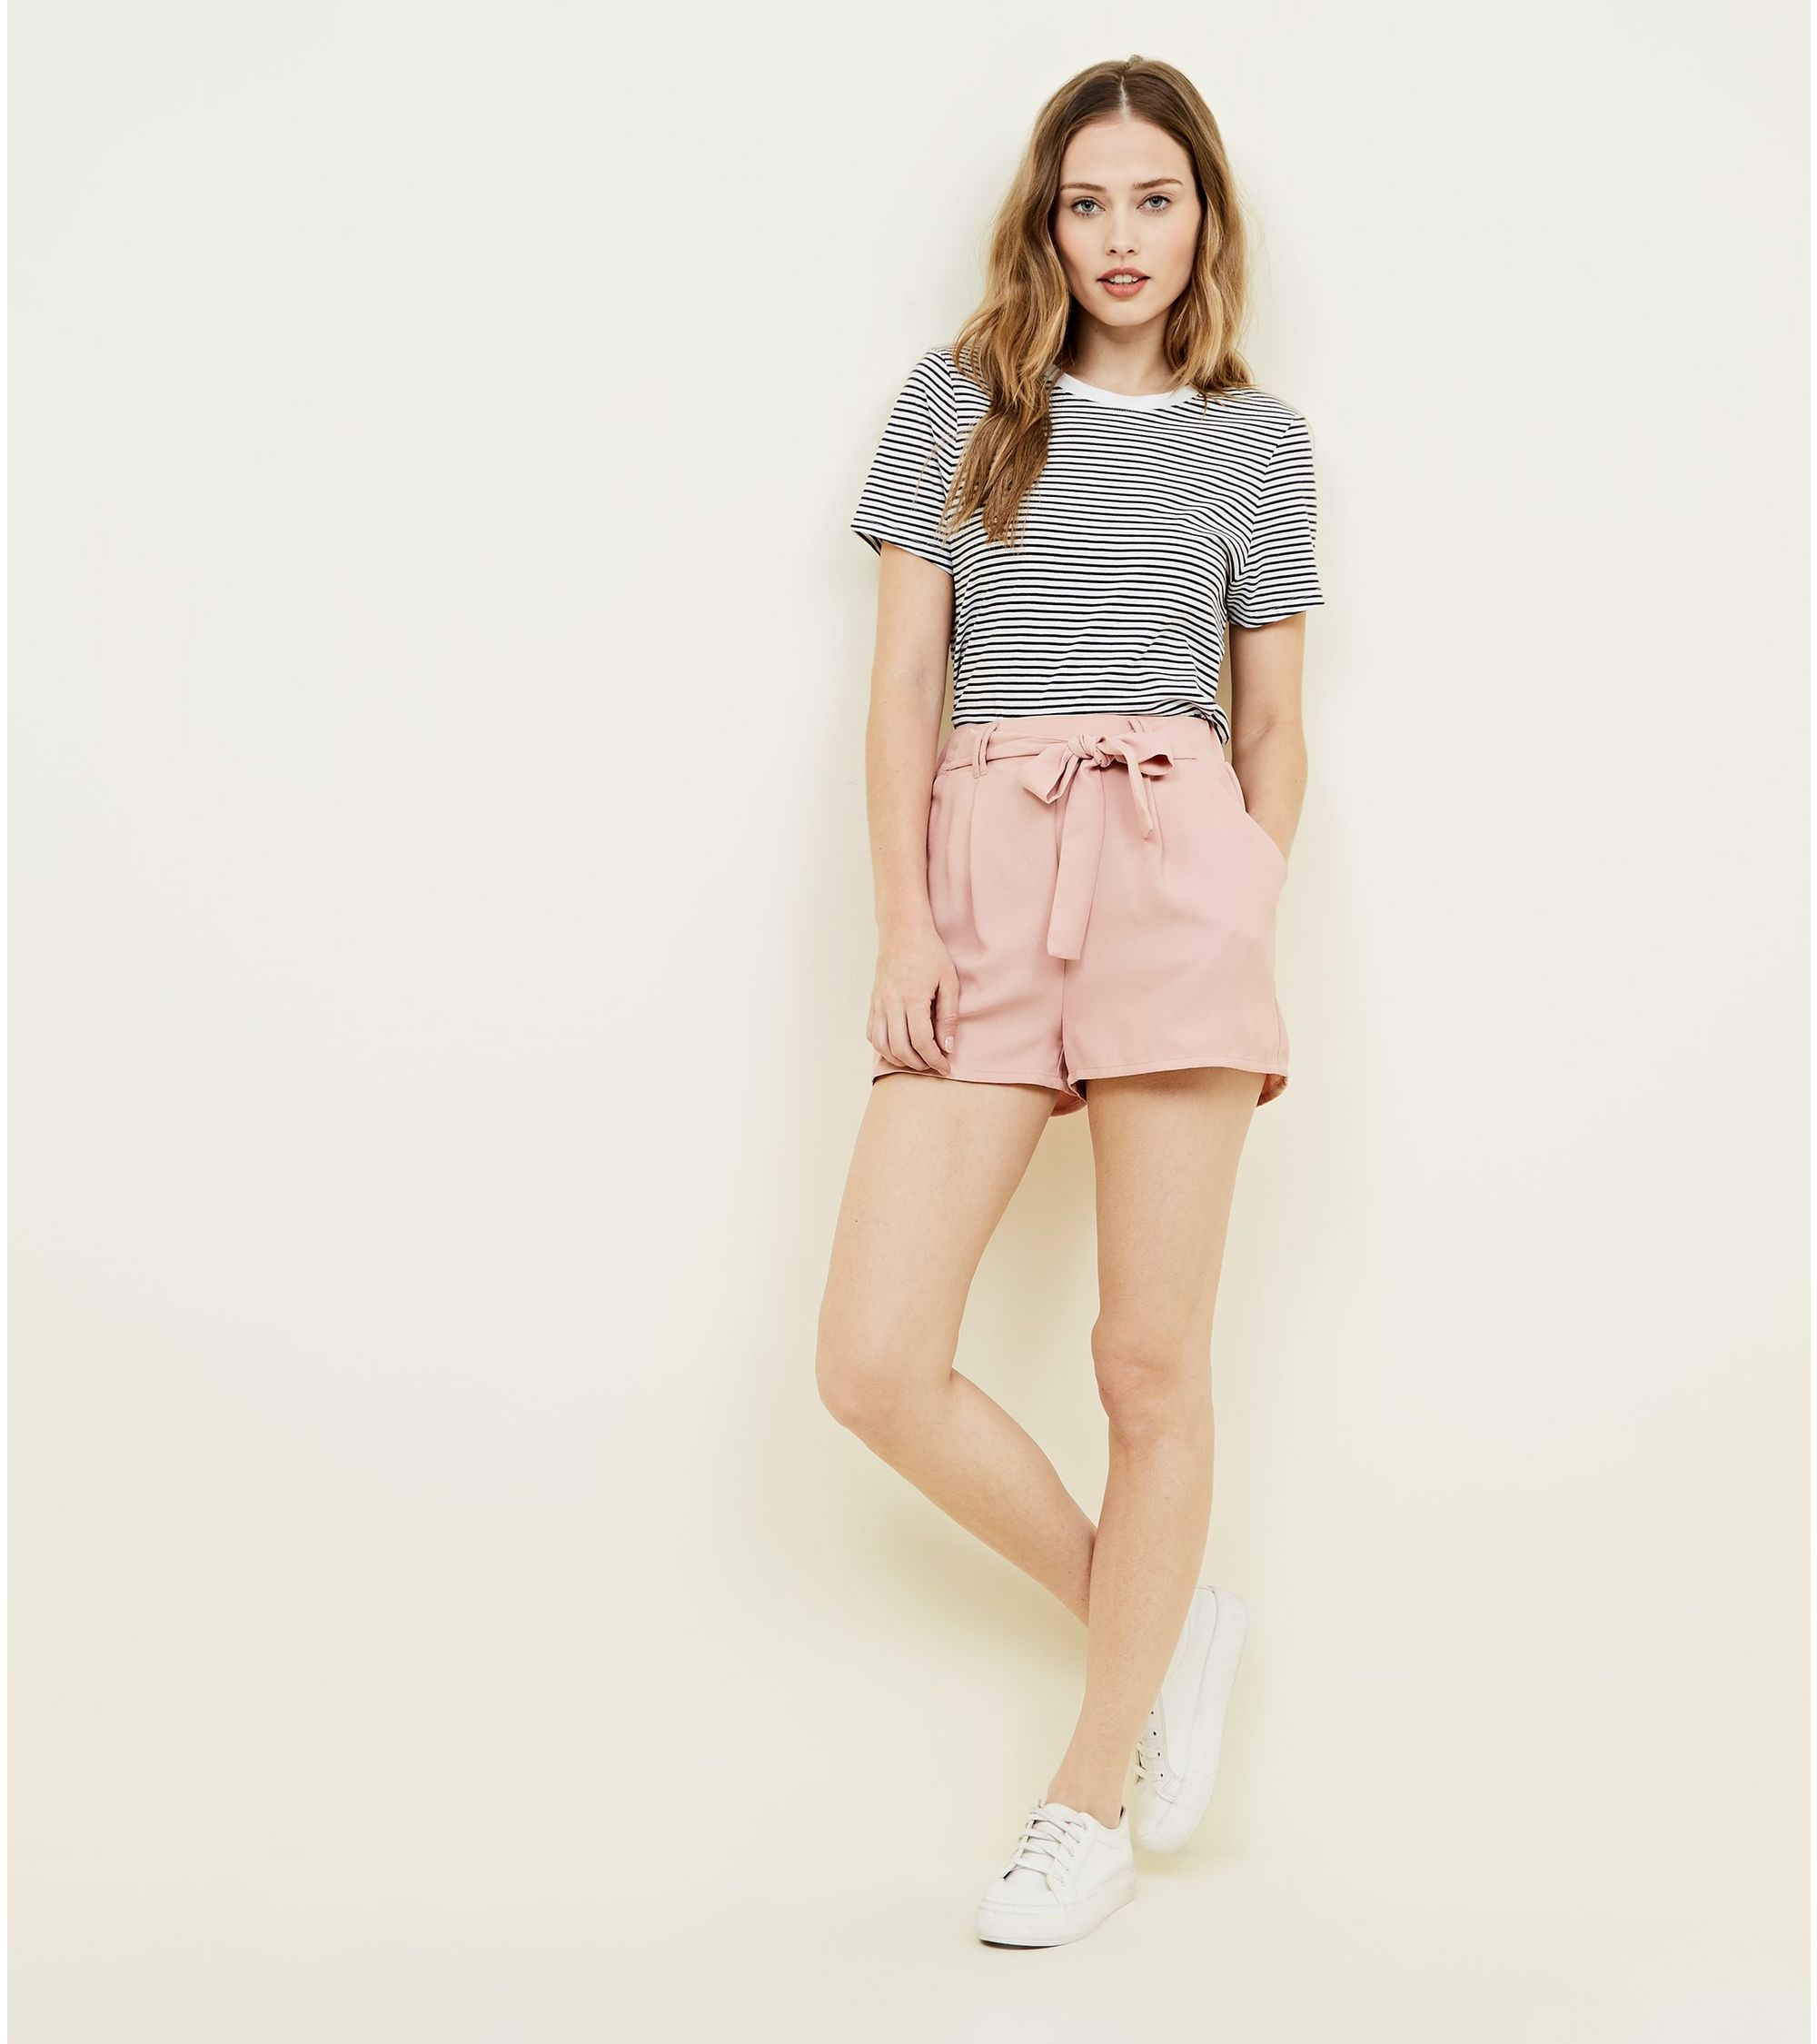 sports shoes 100% genuine low price sale New Look Pale Pink Tie Waist Shorts at £15.99 | love the brands